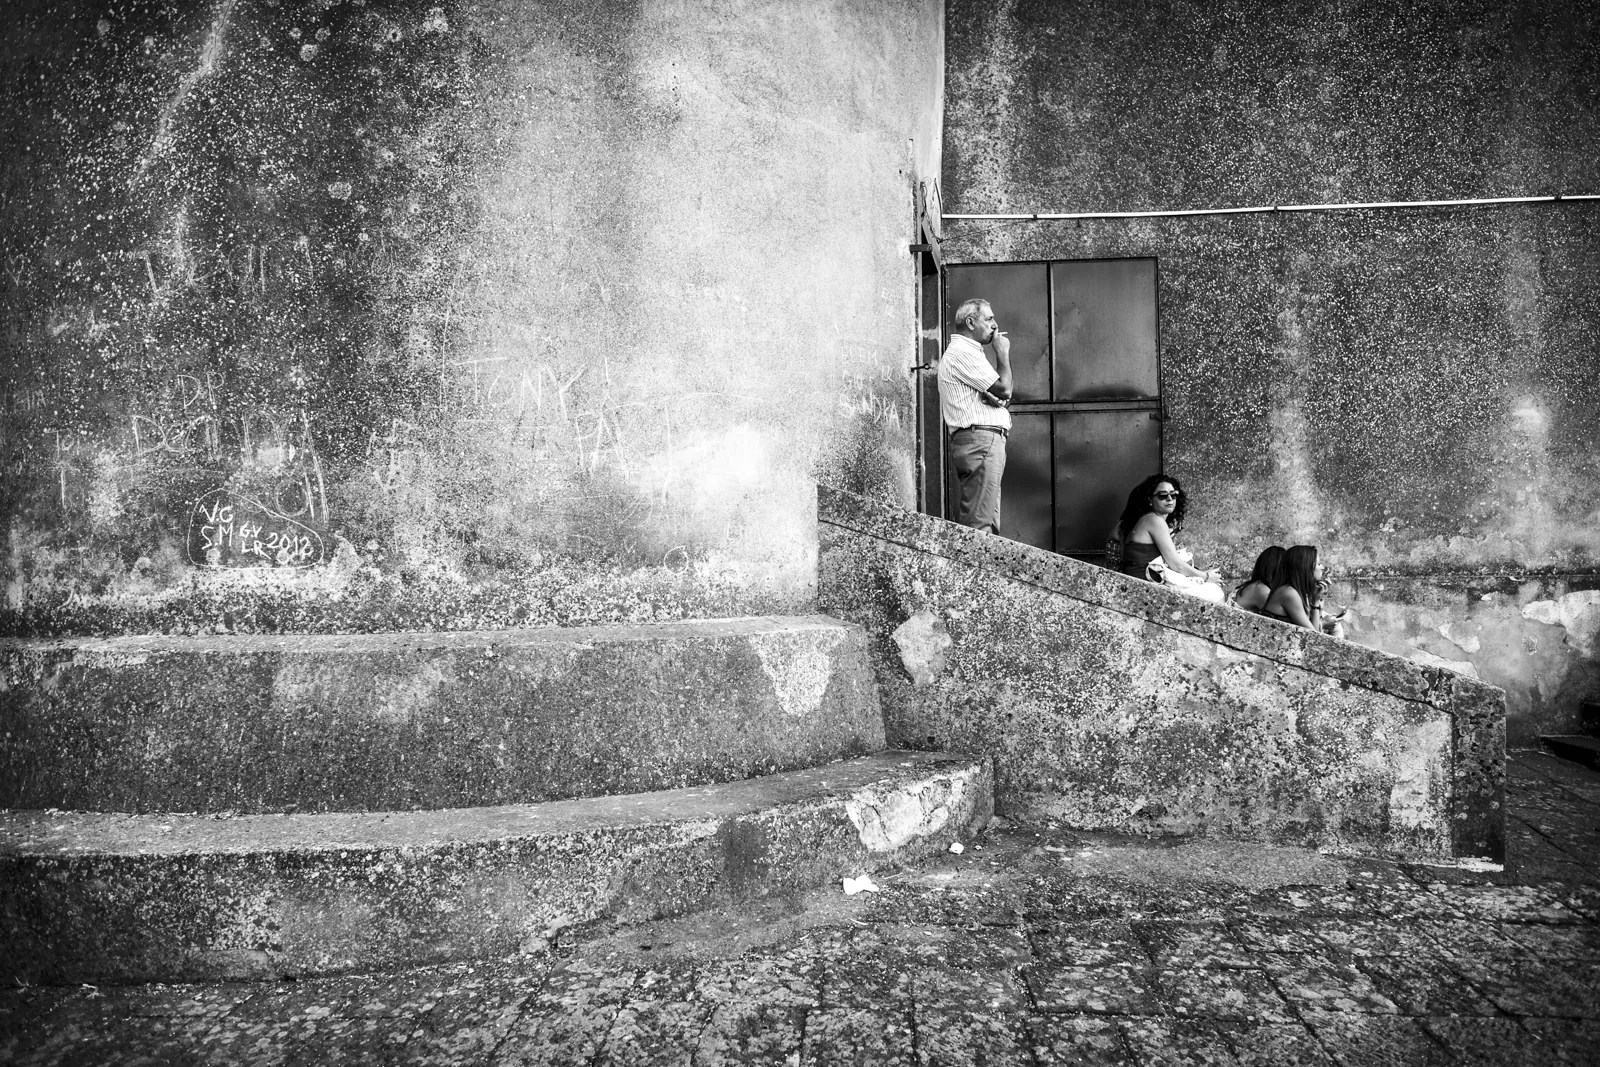 DSCF2928 - La fuori c'è gente - Militello val Ct - Sicily 2014 [street photography] - fotostreet.it